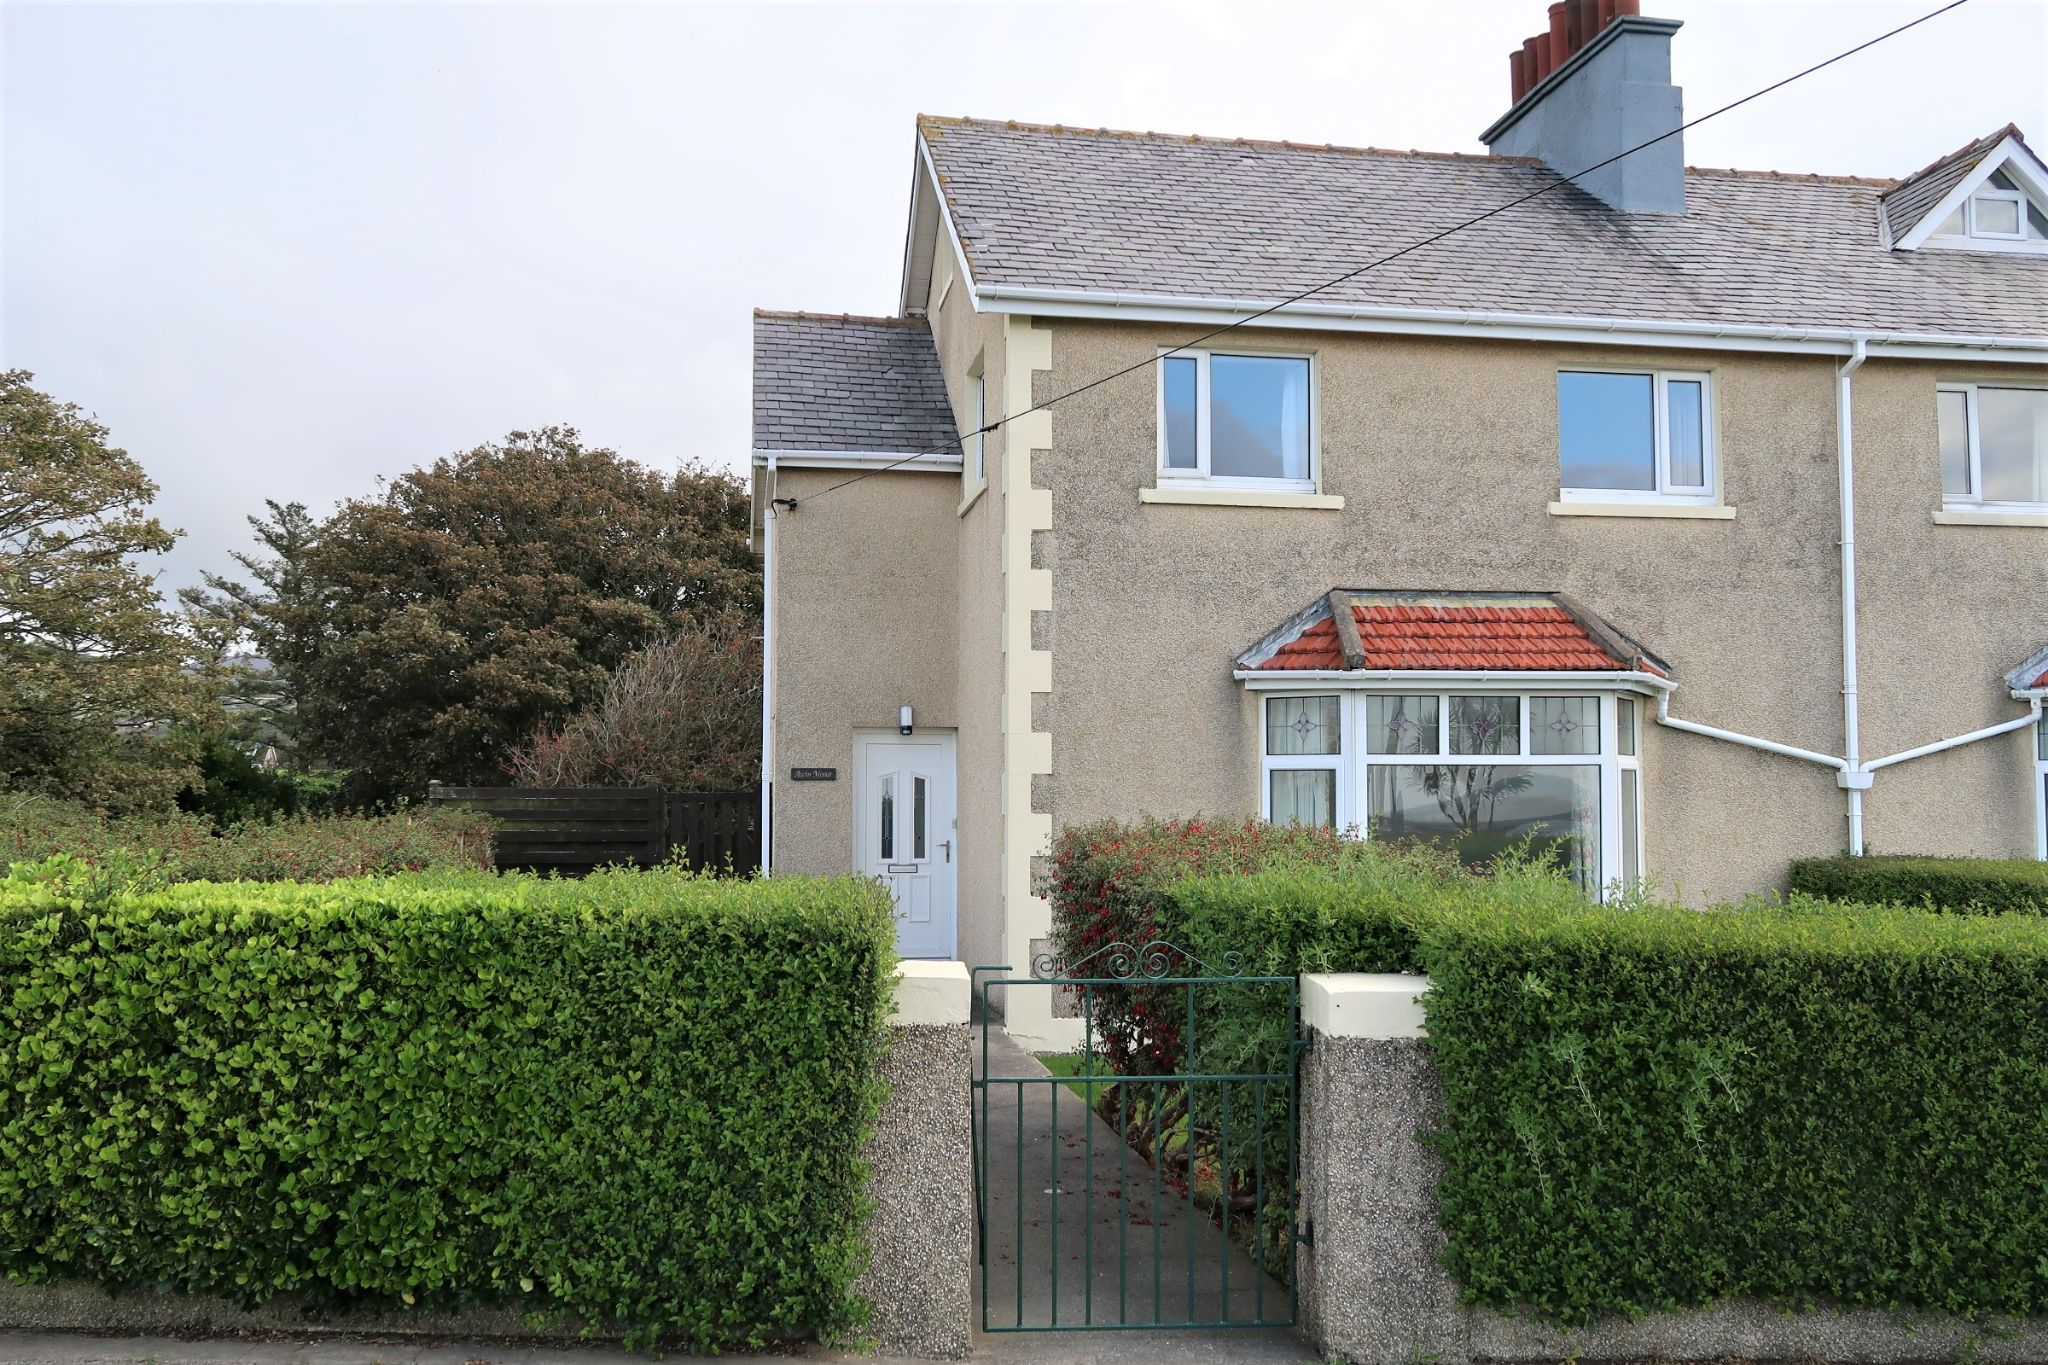 3 bedroom semi-detached house Let in Port St. Mary - Photograph 1